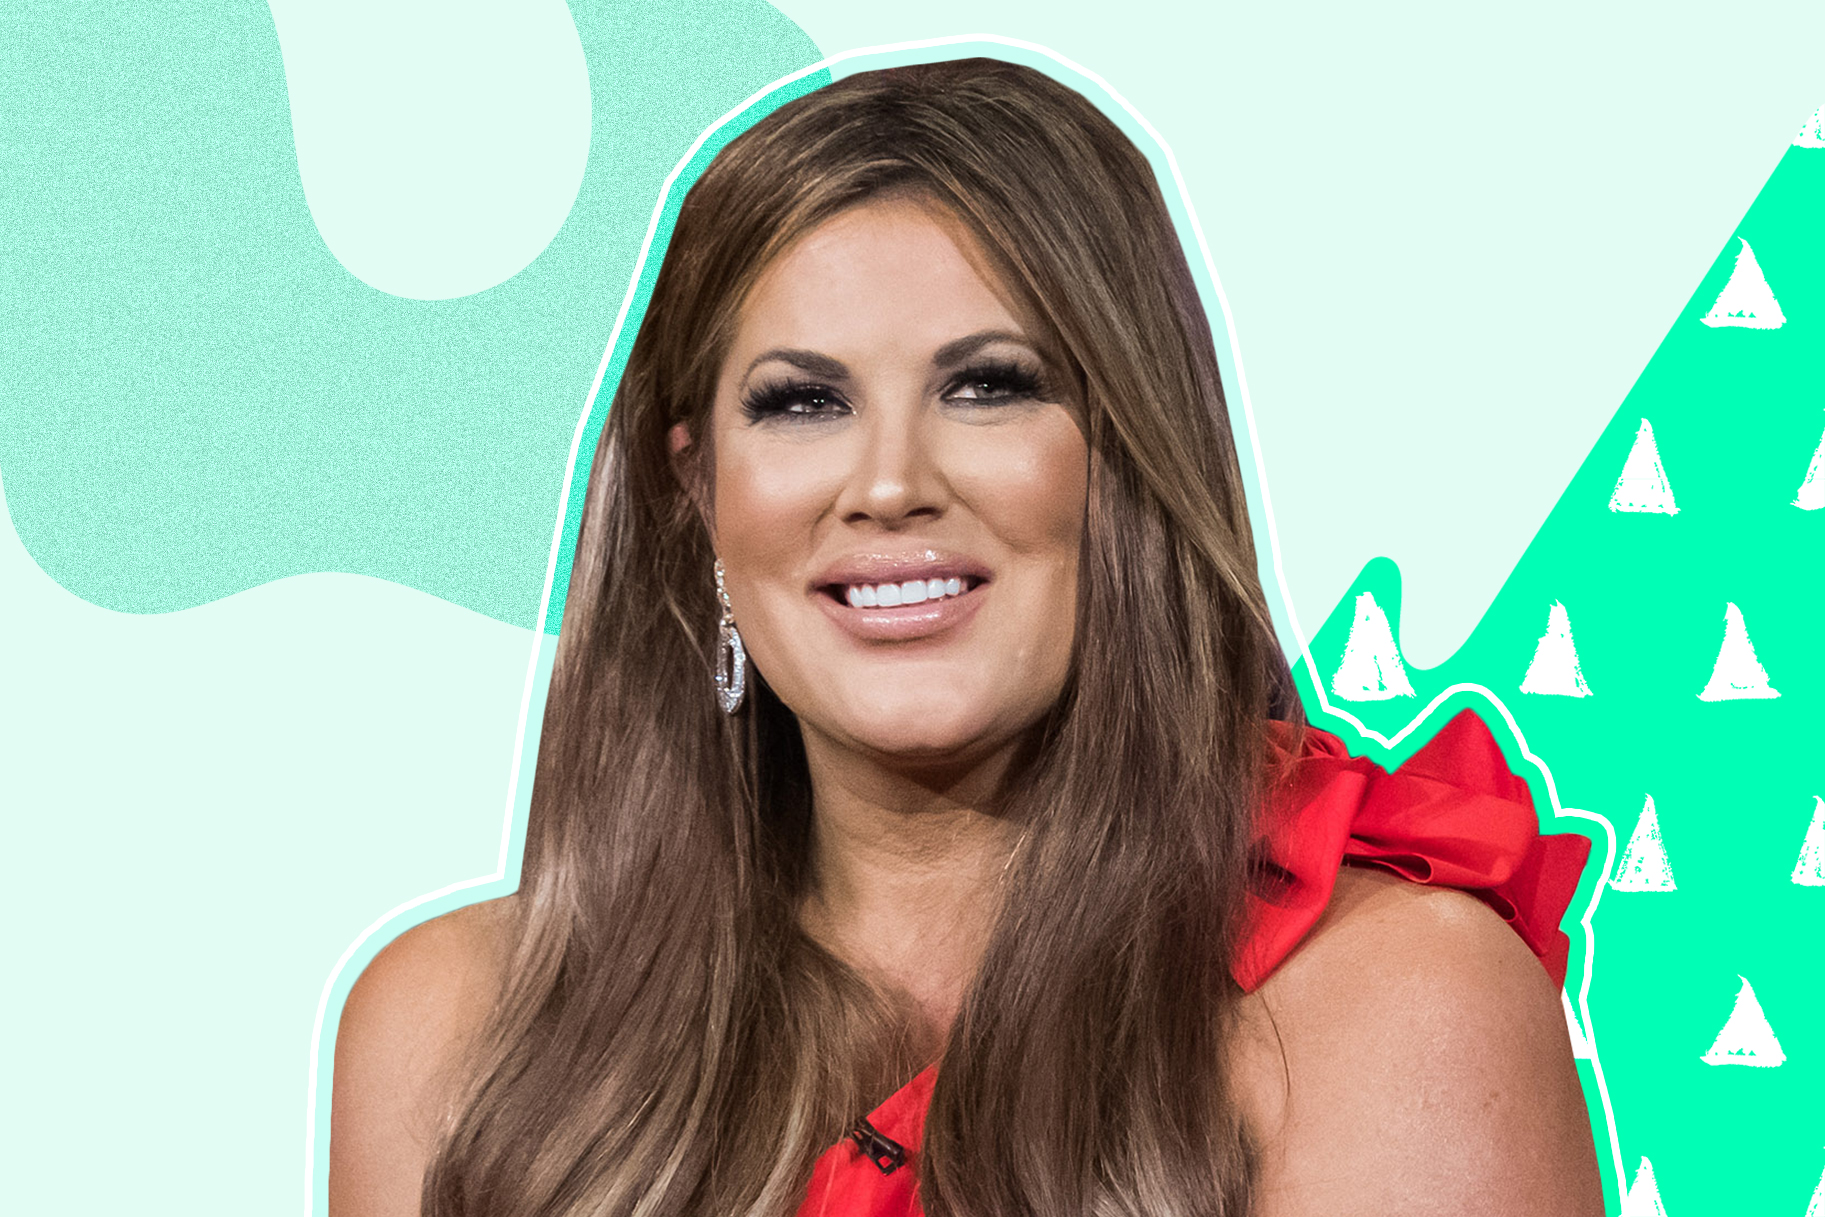 Watch Shannon Trusts That David Is Telling the Truth - The Real Housewives of Orange County VideosShannon Trusts That David Is Telling the Truth - 웹